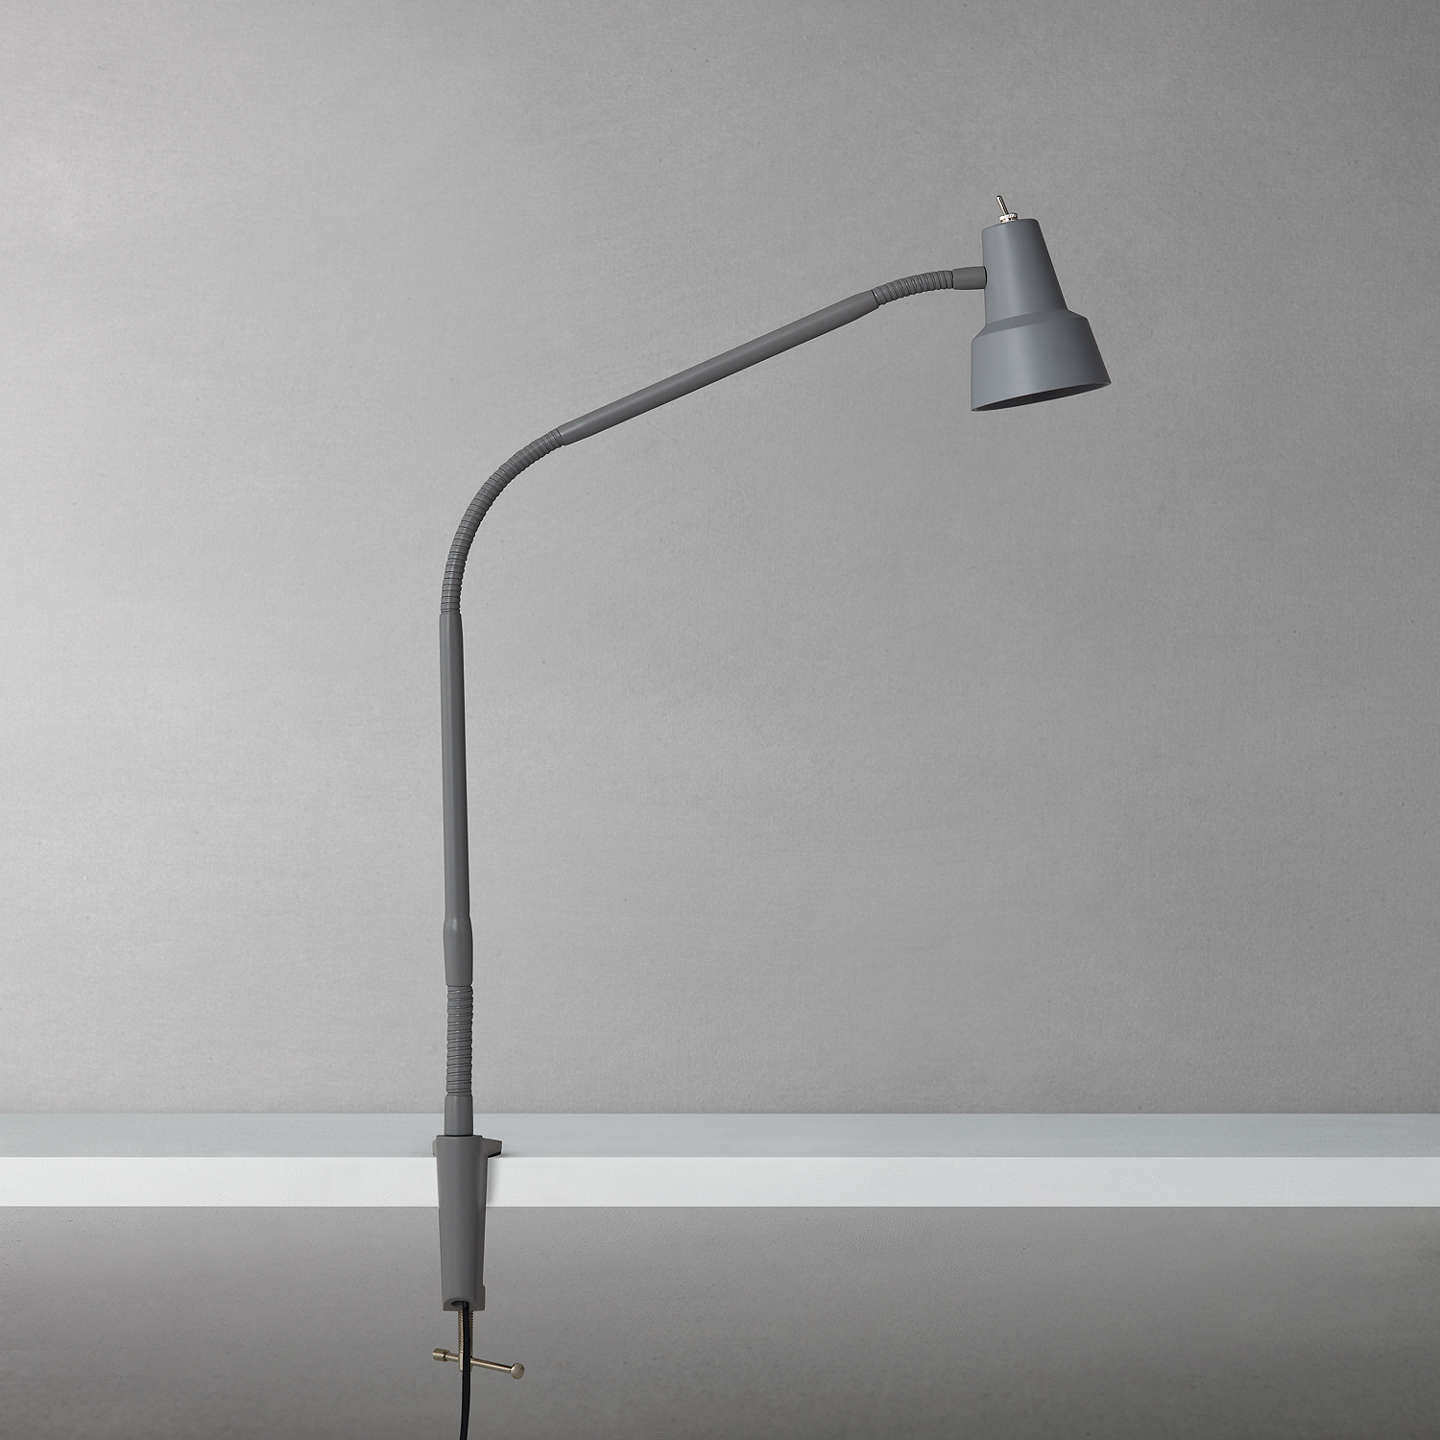 BuyJohn Lewis Zadie LED Clip on Desk Lamp with Clamp, Grey Online at johnlewis.com